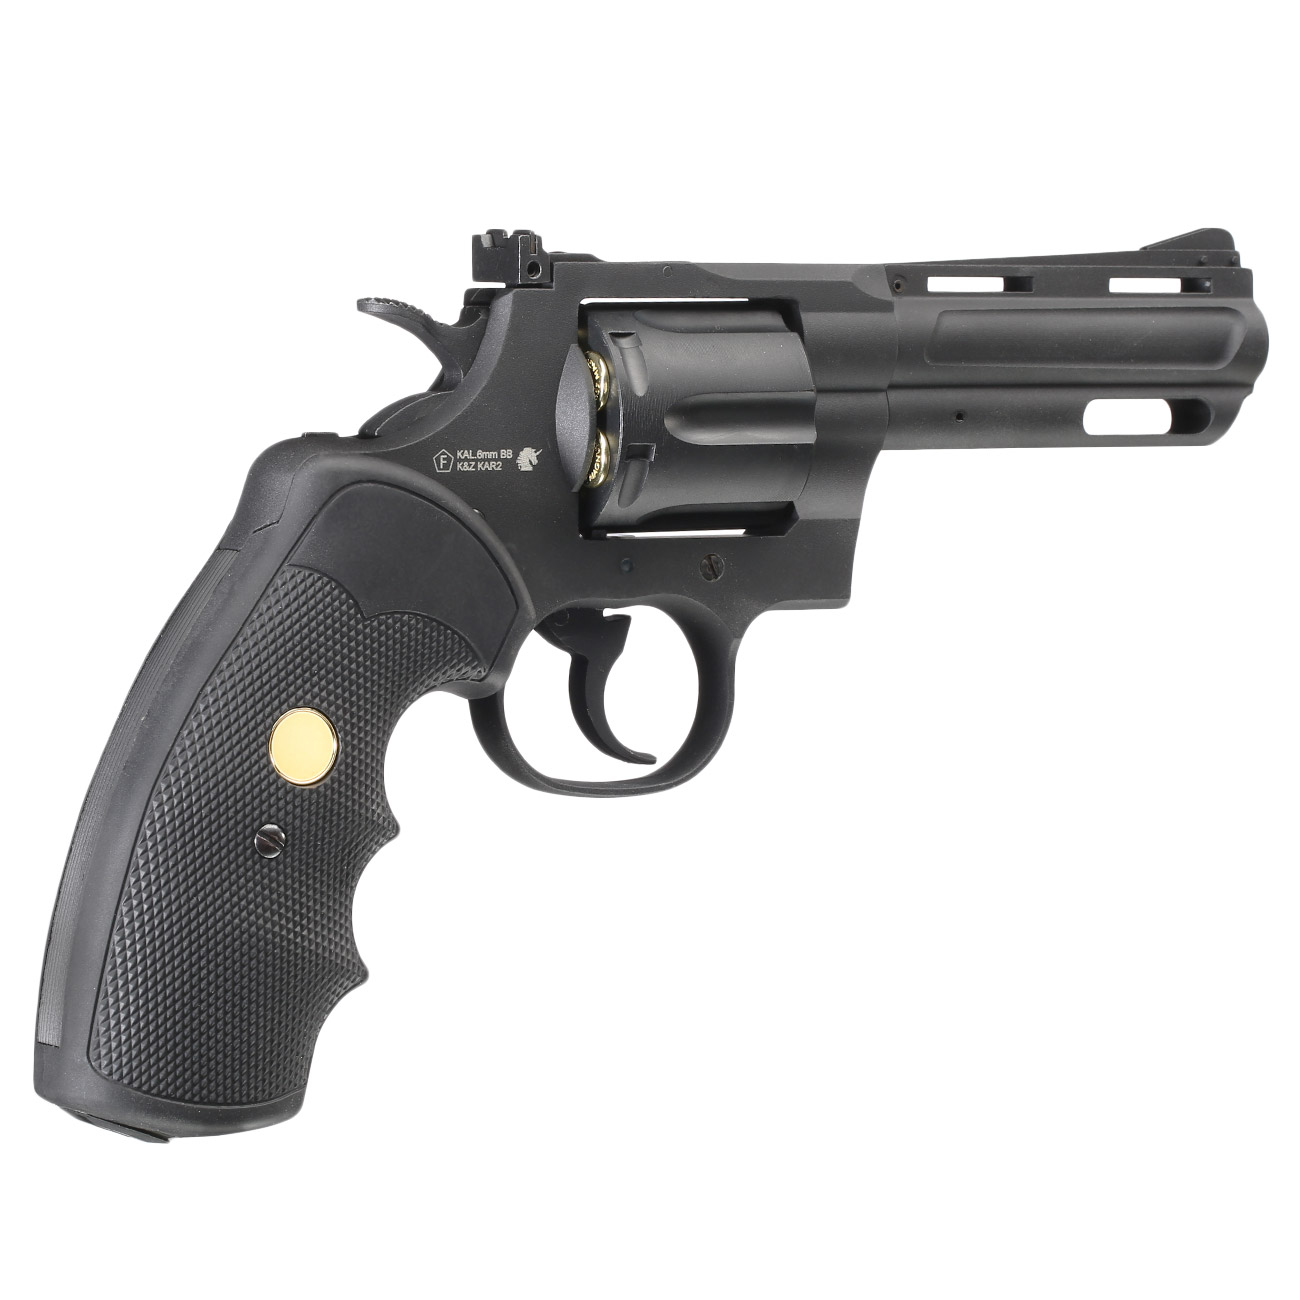 King Arms .357 Magnum Custom I 4 Zoll Revolver Vollmetall CO2 6mm BB schwarz 4